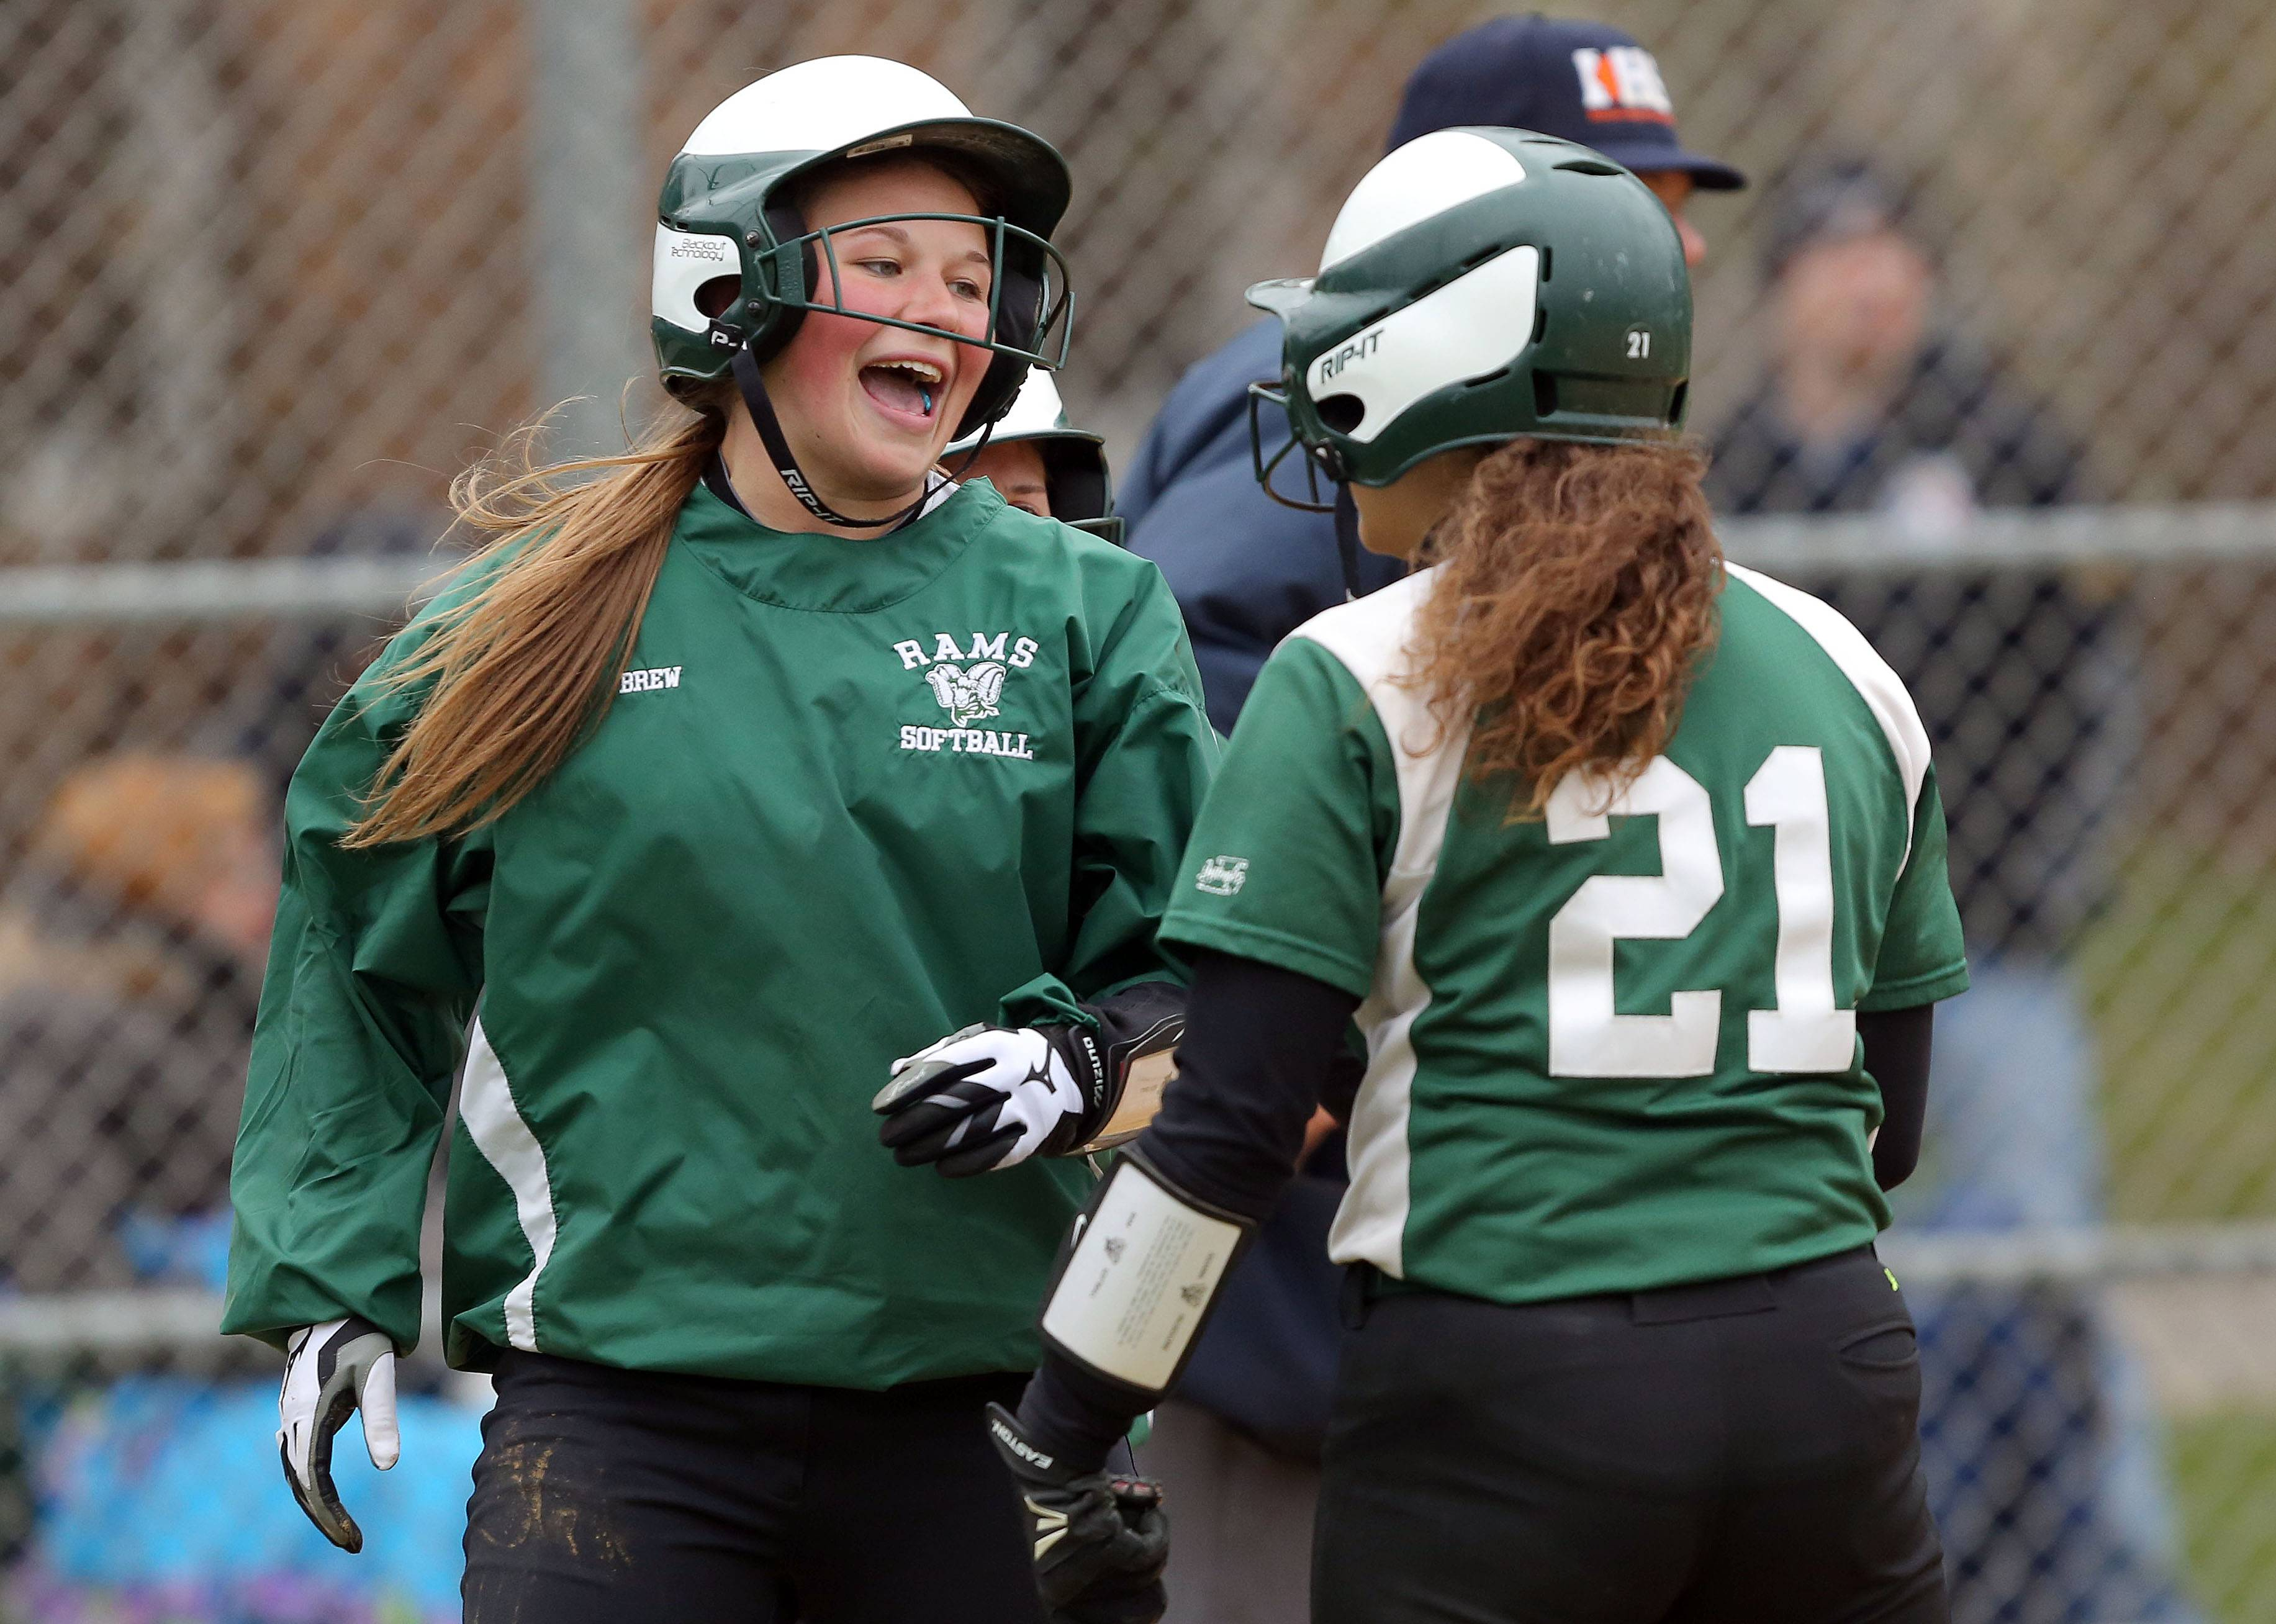 Grayslake Central's Jamie Brew, left, celebrates with Juliana Frusolone after scoring during Monday's softball game against Grayslake North.